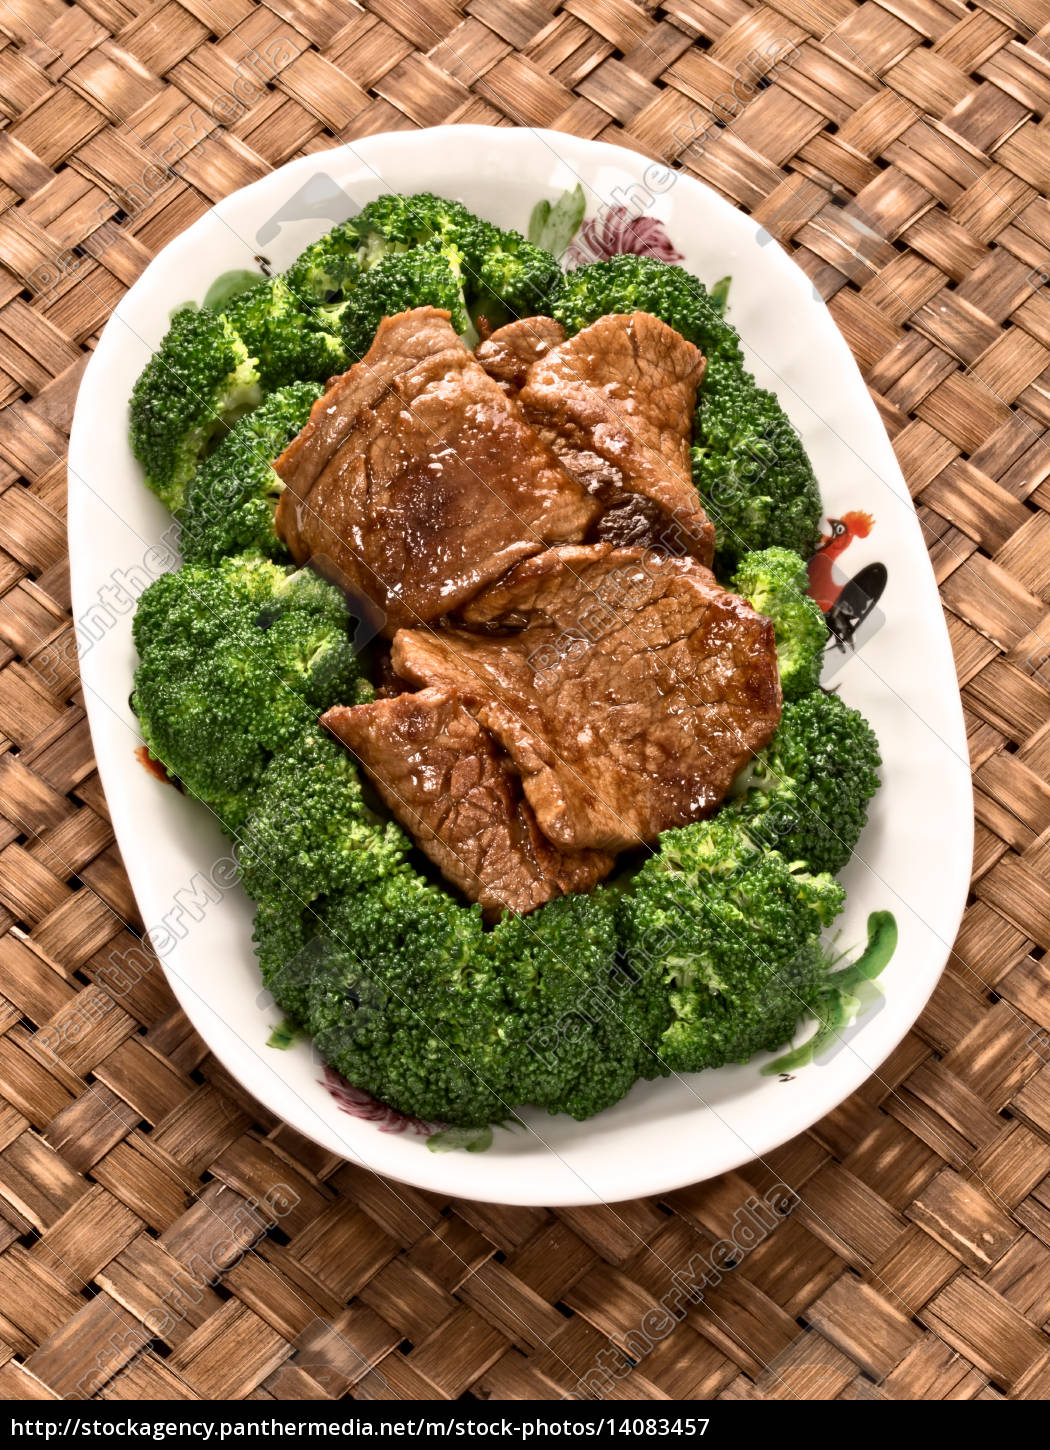 american, chinese, beef, and, broccoli - 14083457